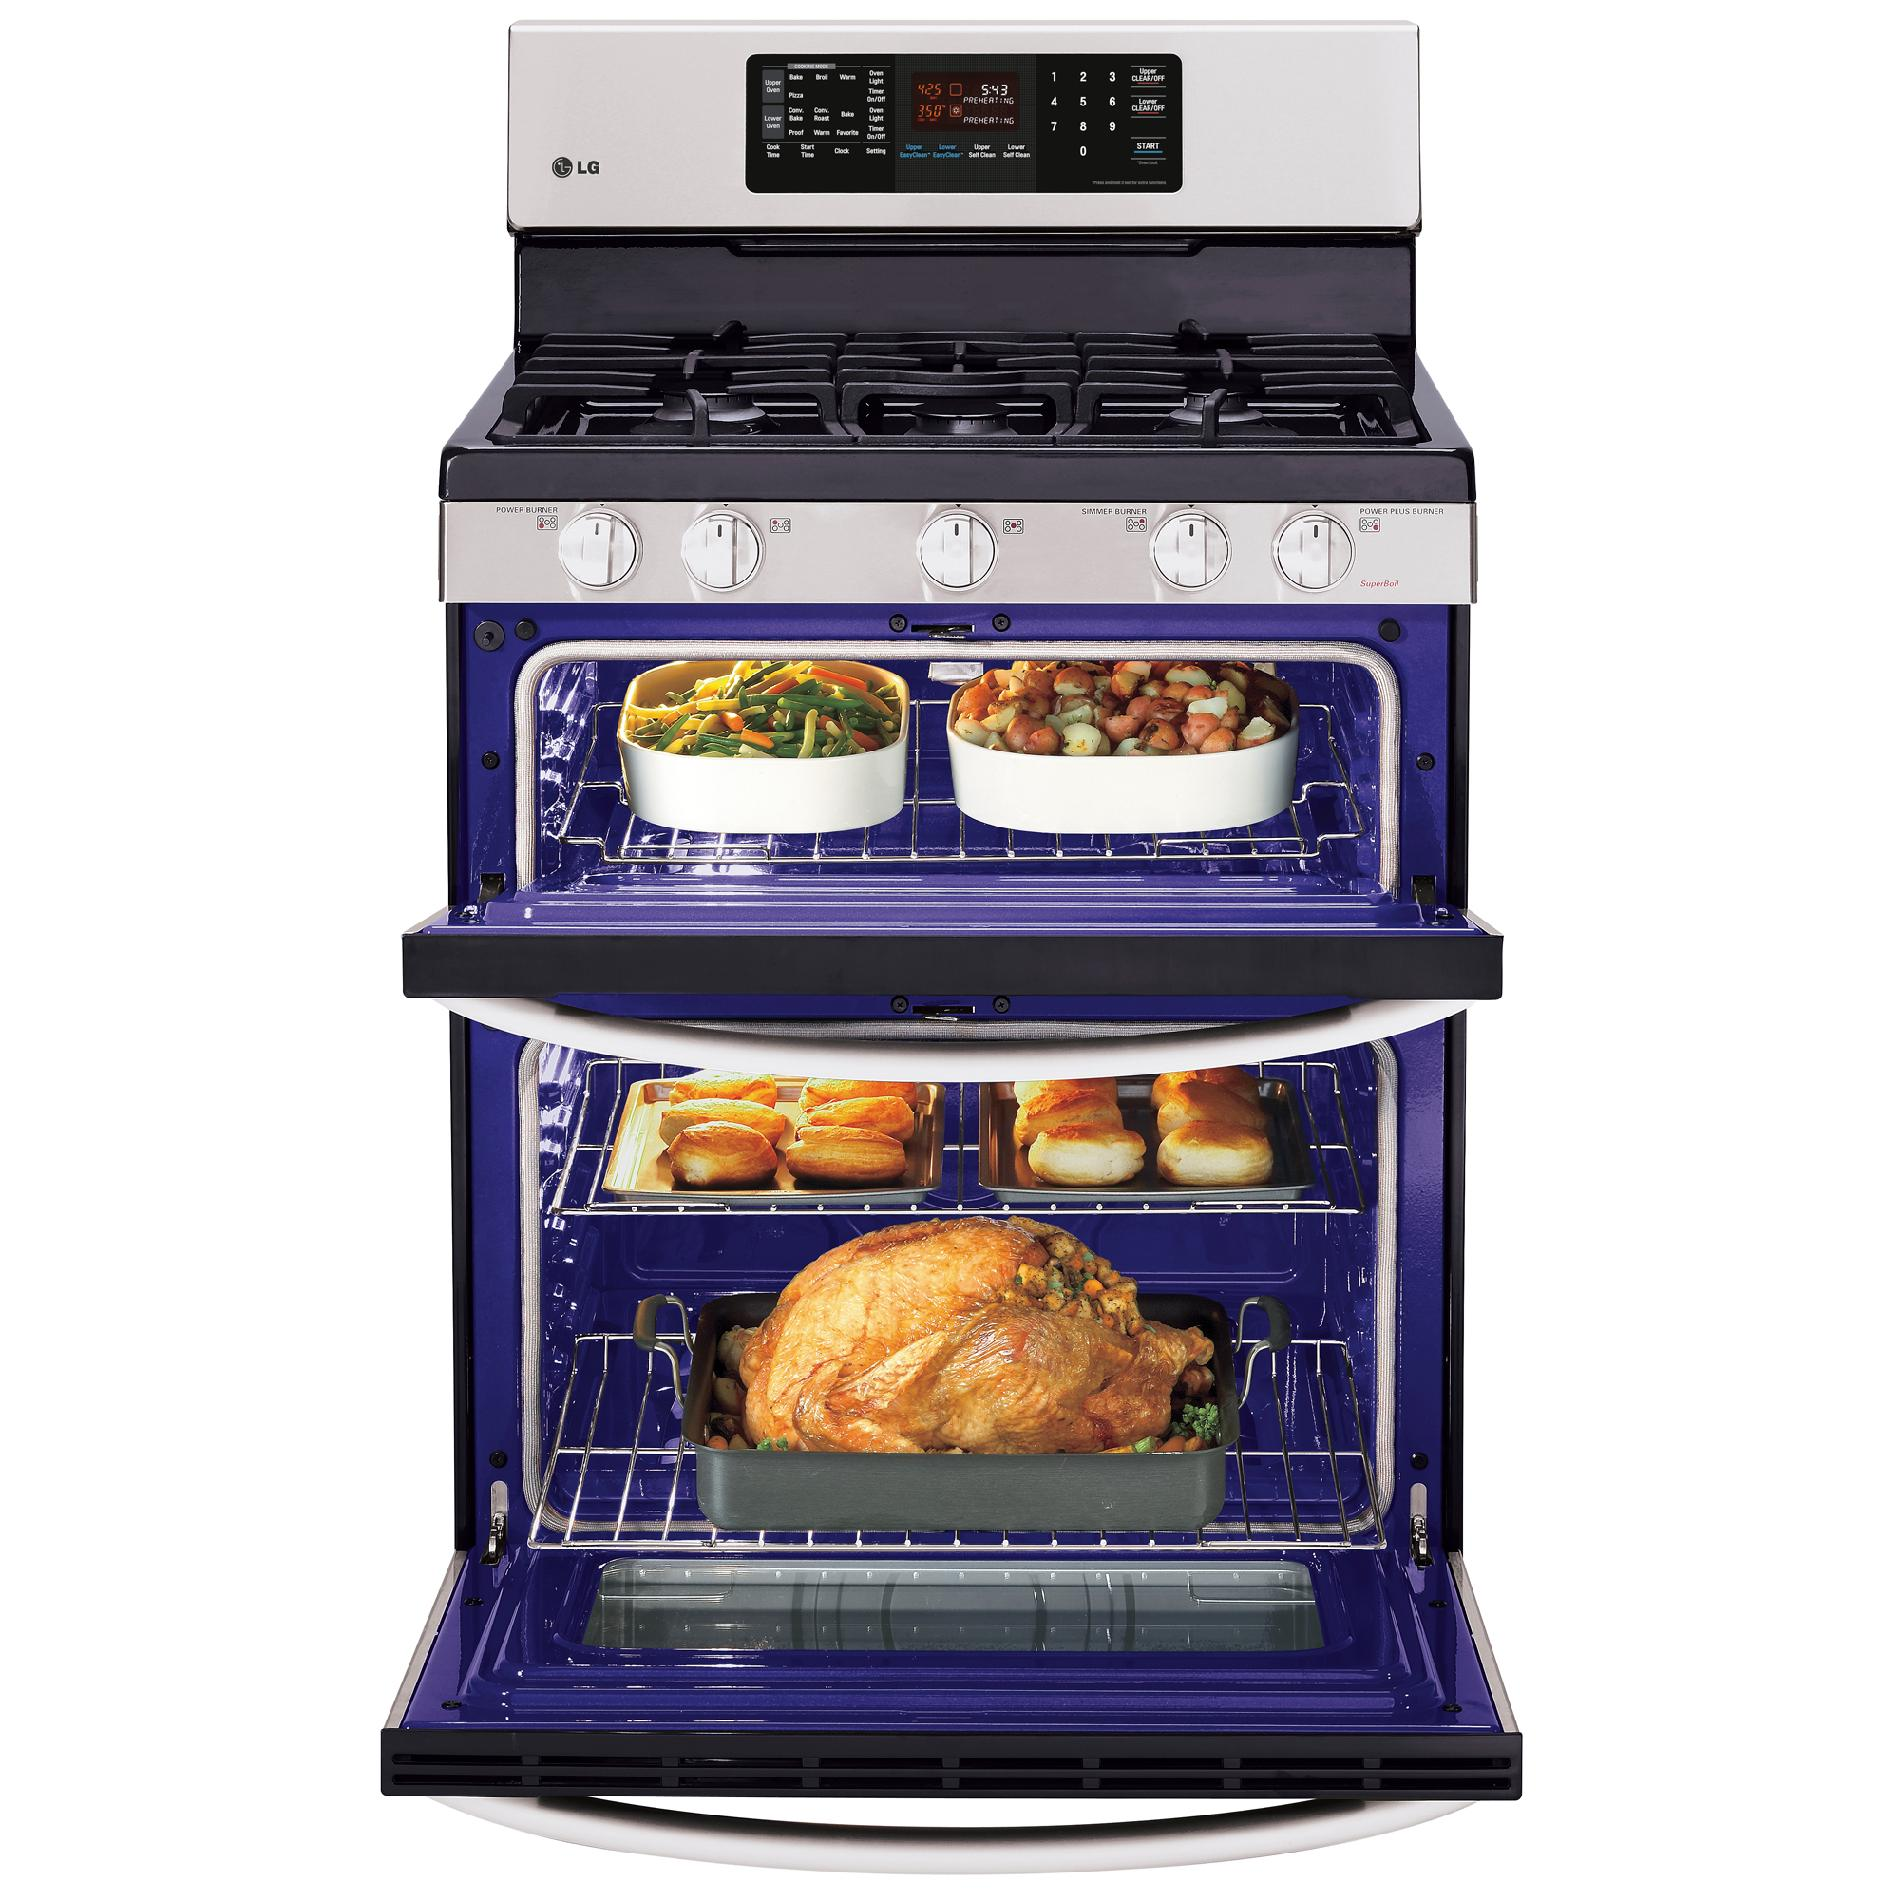 LG LDG3036ST 6.1 cu. ft. Double-Oven Gas Range w/EasyClean™ - Stainless Steel